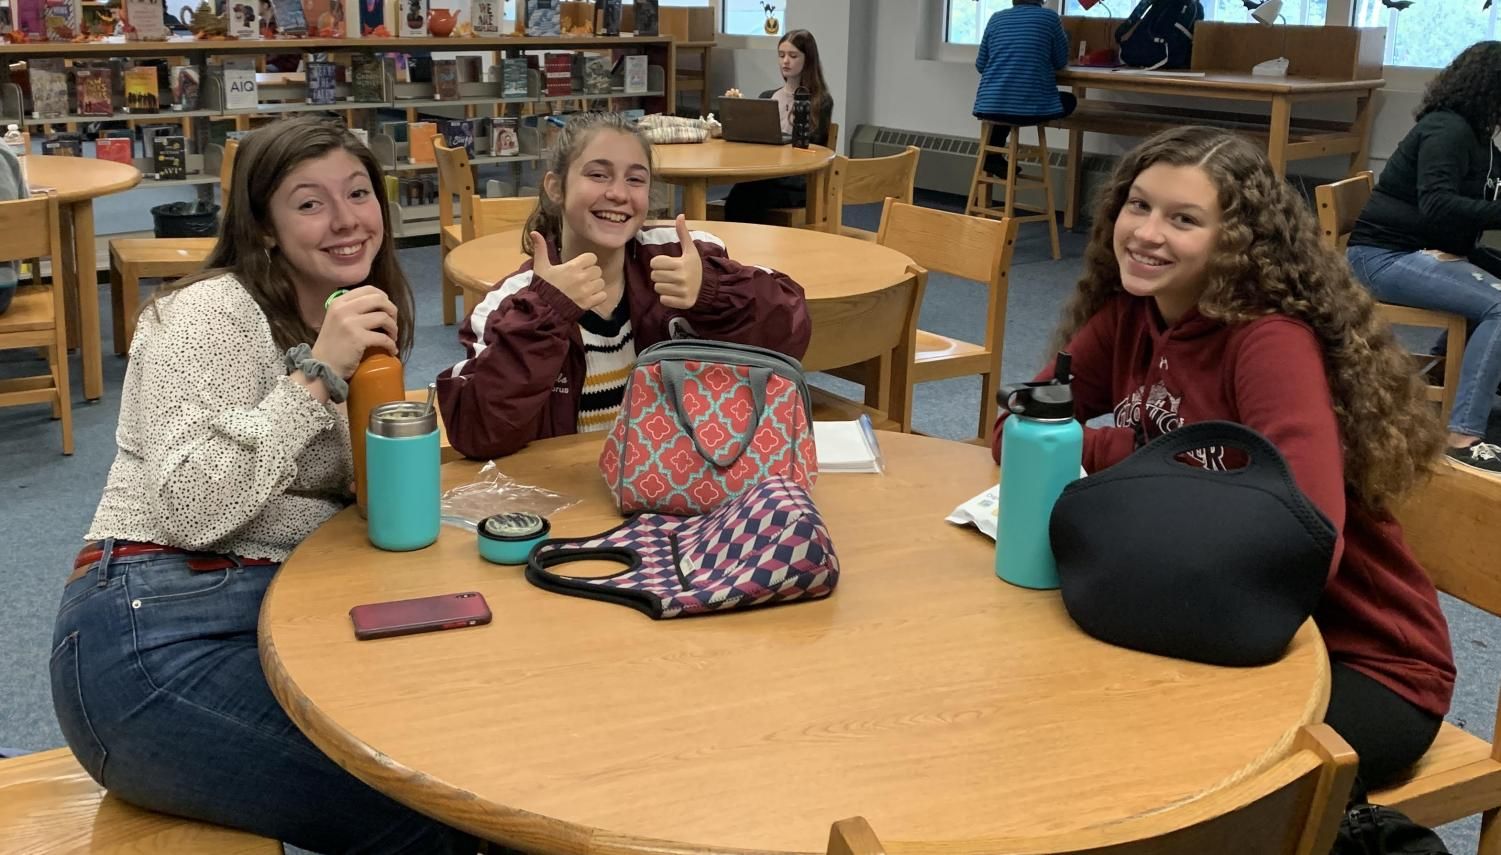 (from left) Asha Egmont, Isabella Giordano, and Haley Weed enjoy lunch in the Library Learning Commons